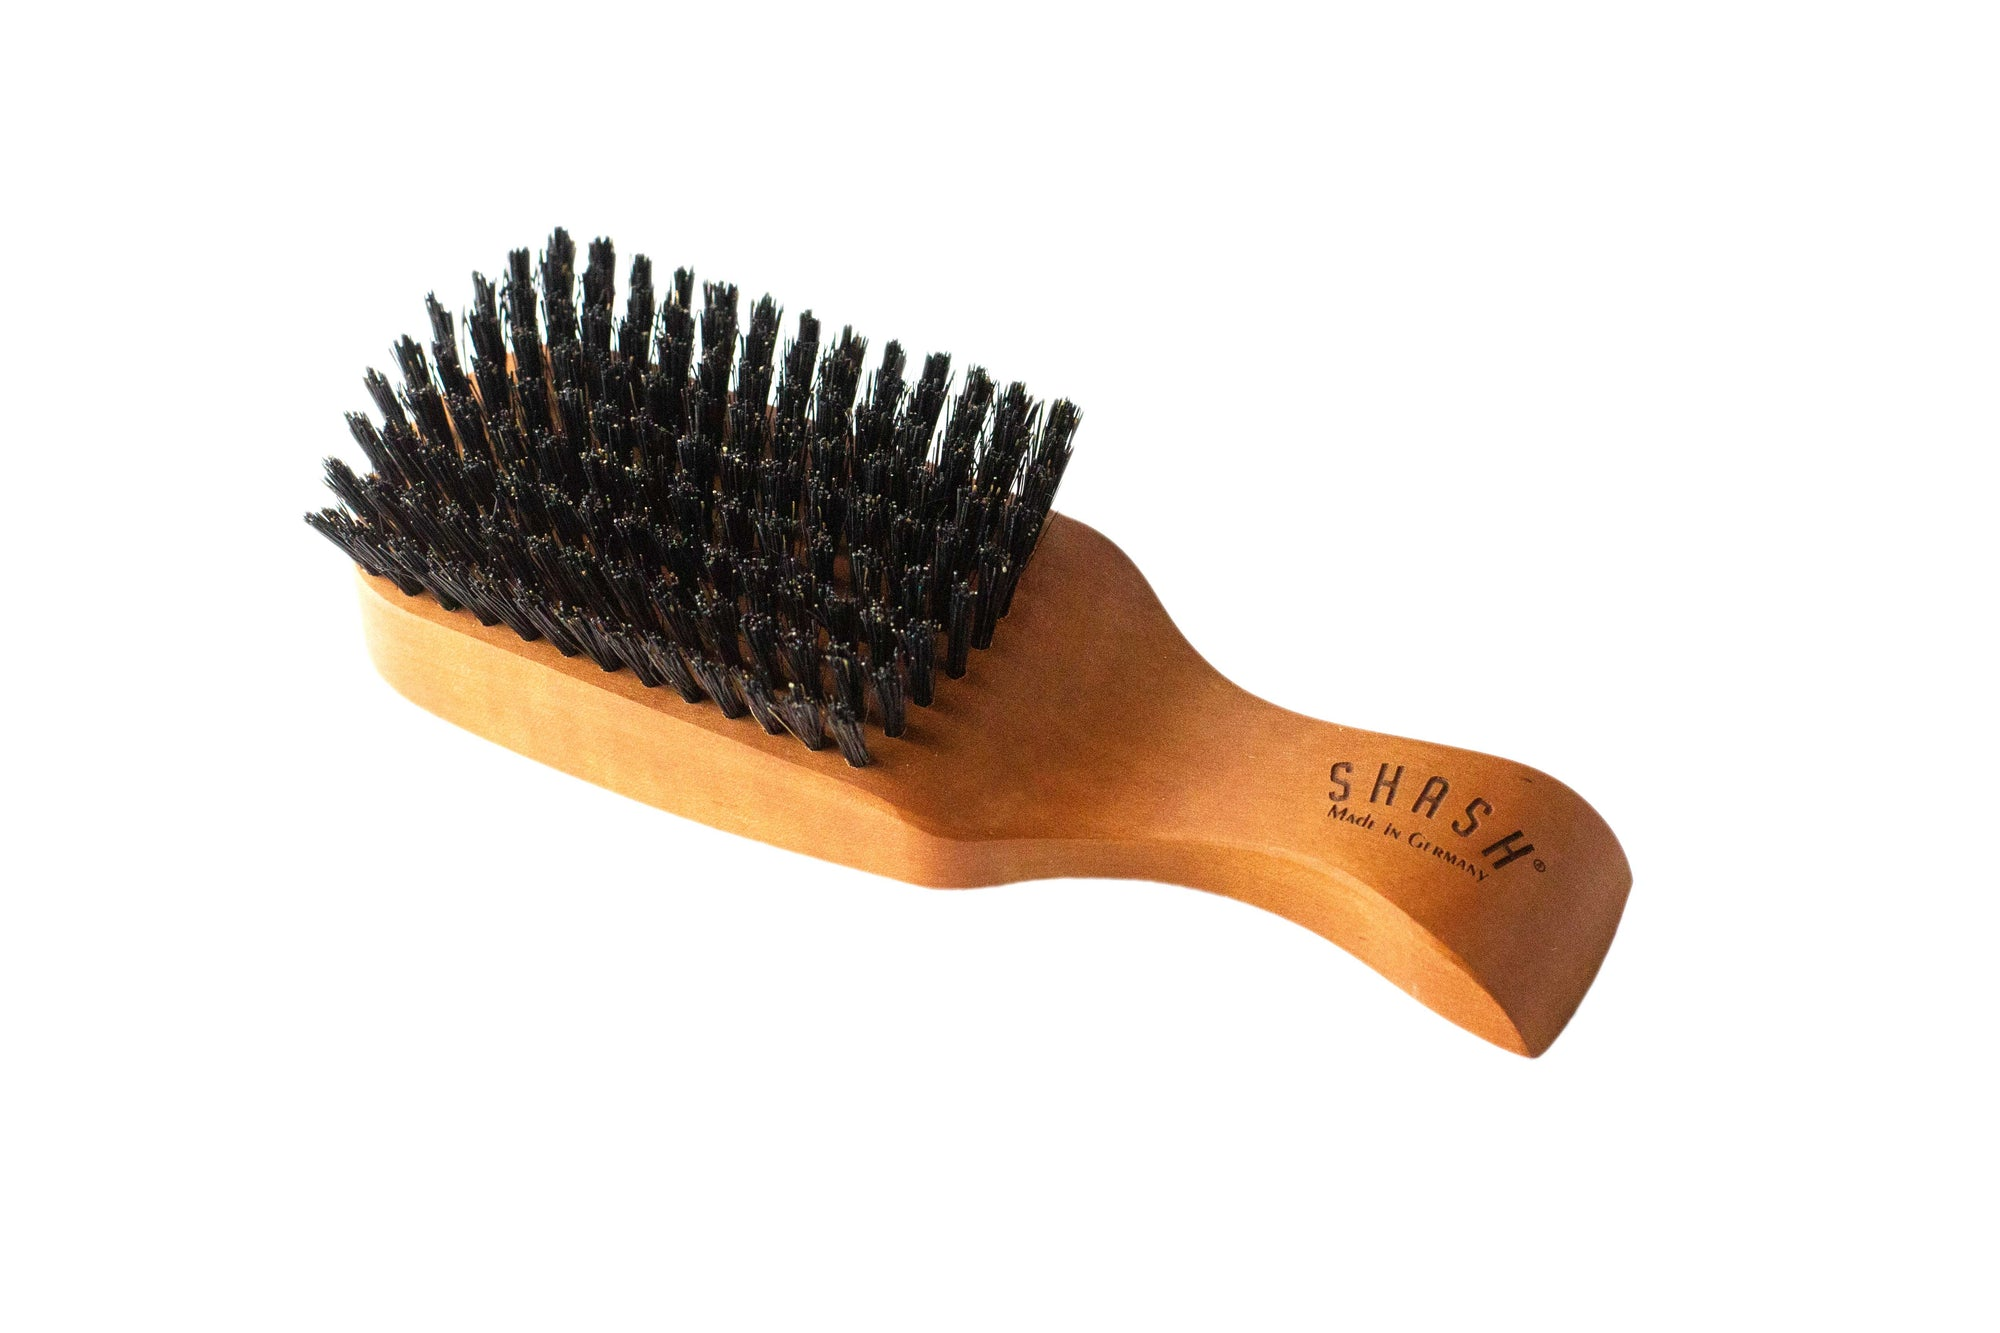 THE GO-TO BOAR BRISTLE HAIR BRUSH